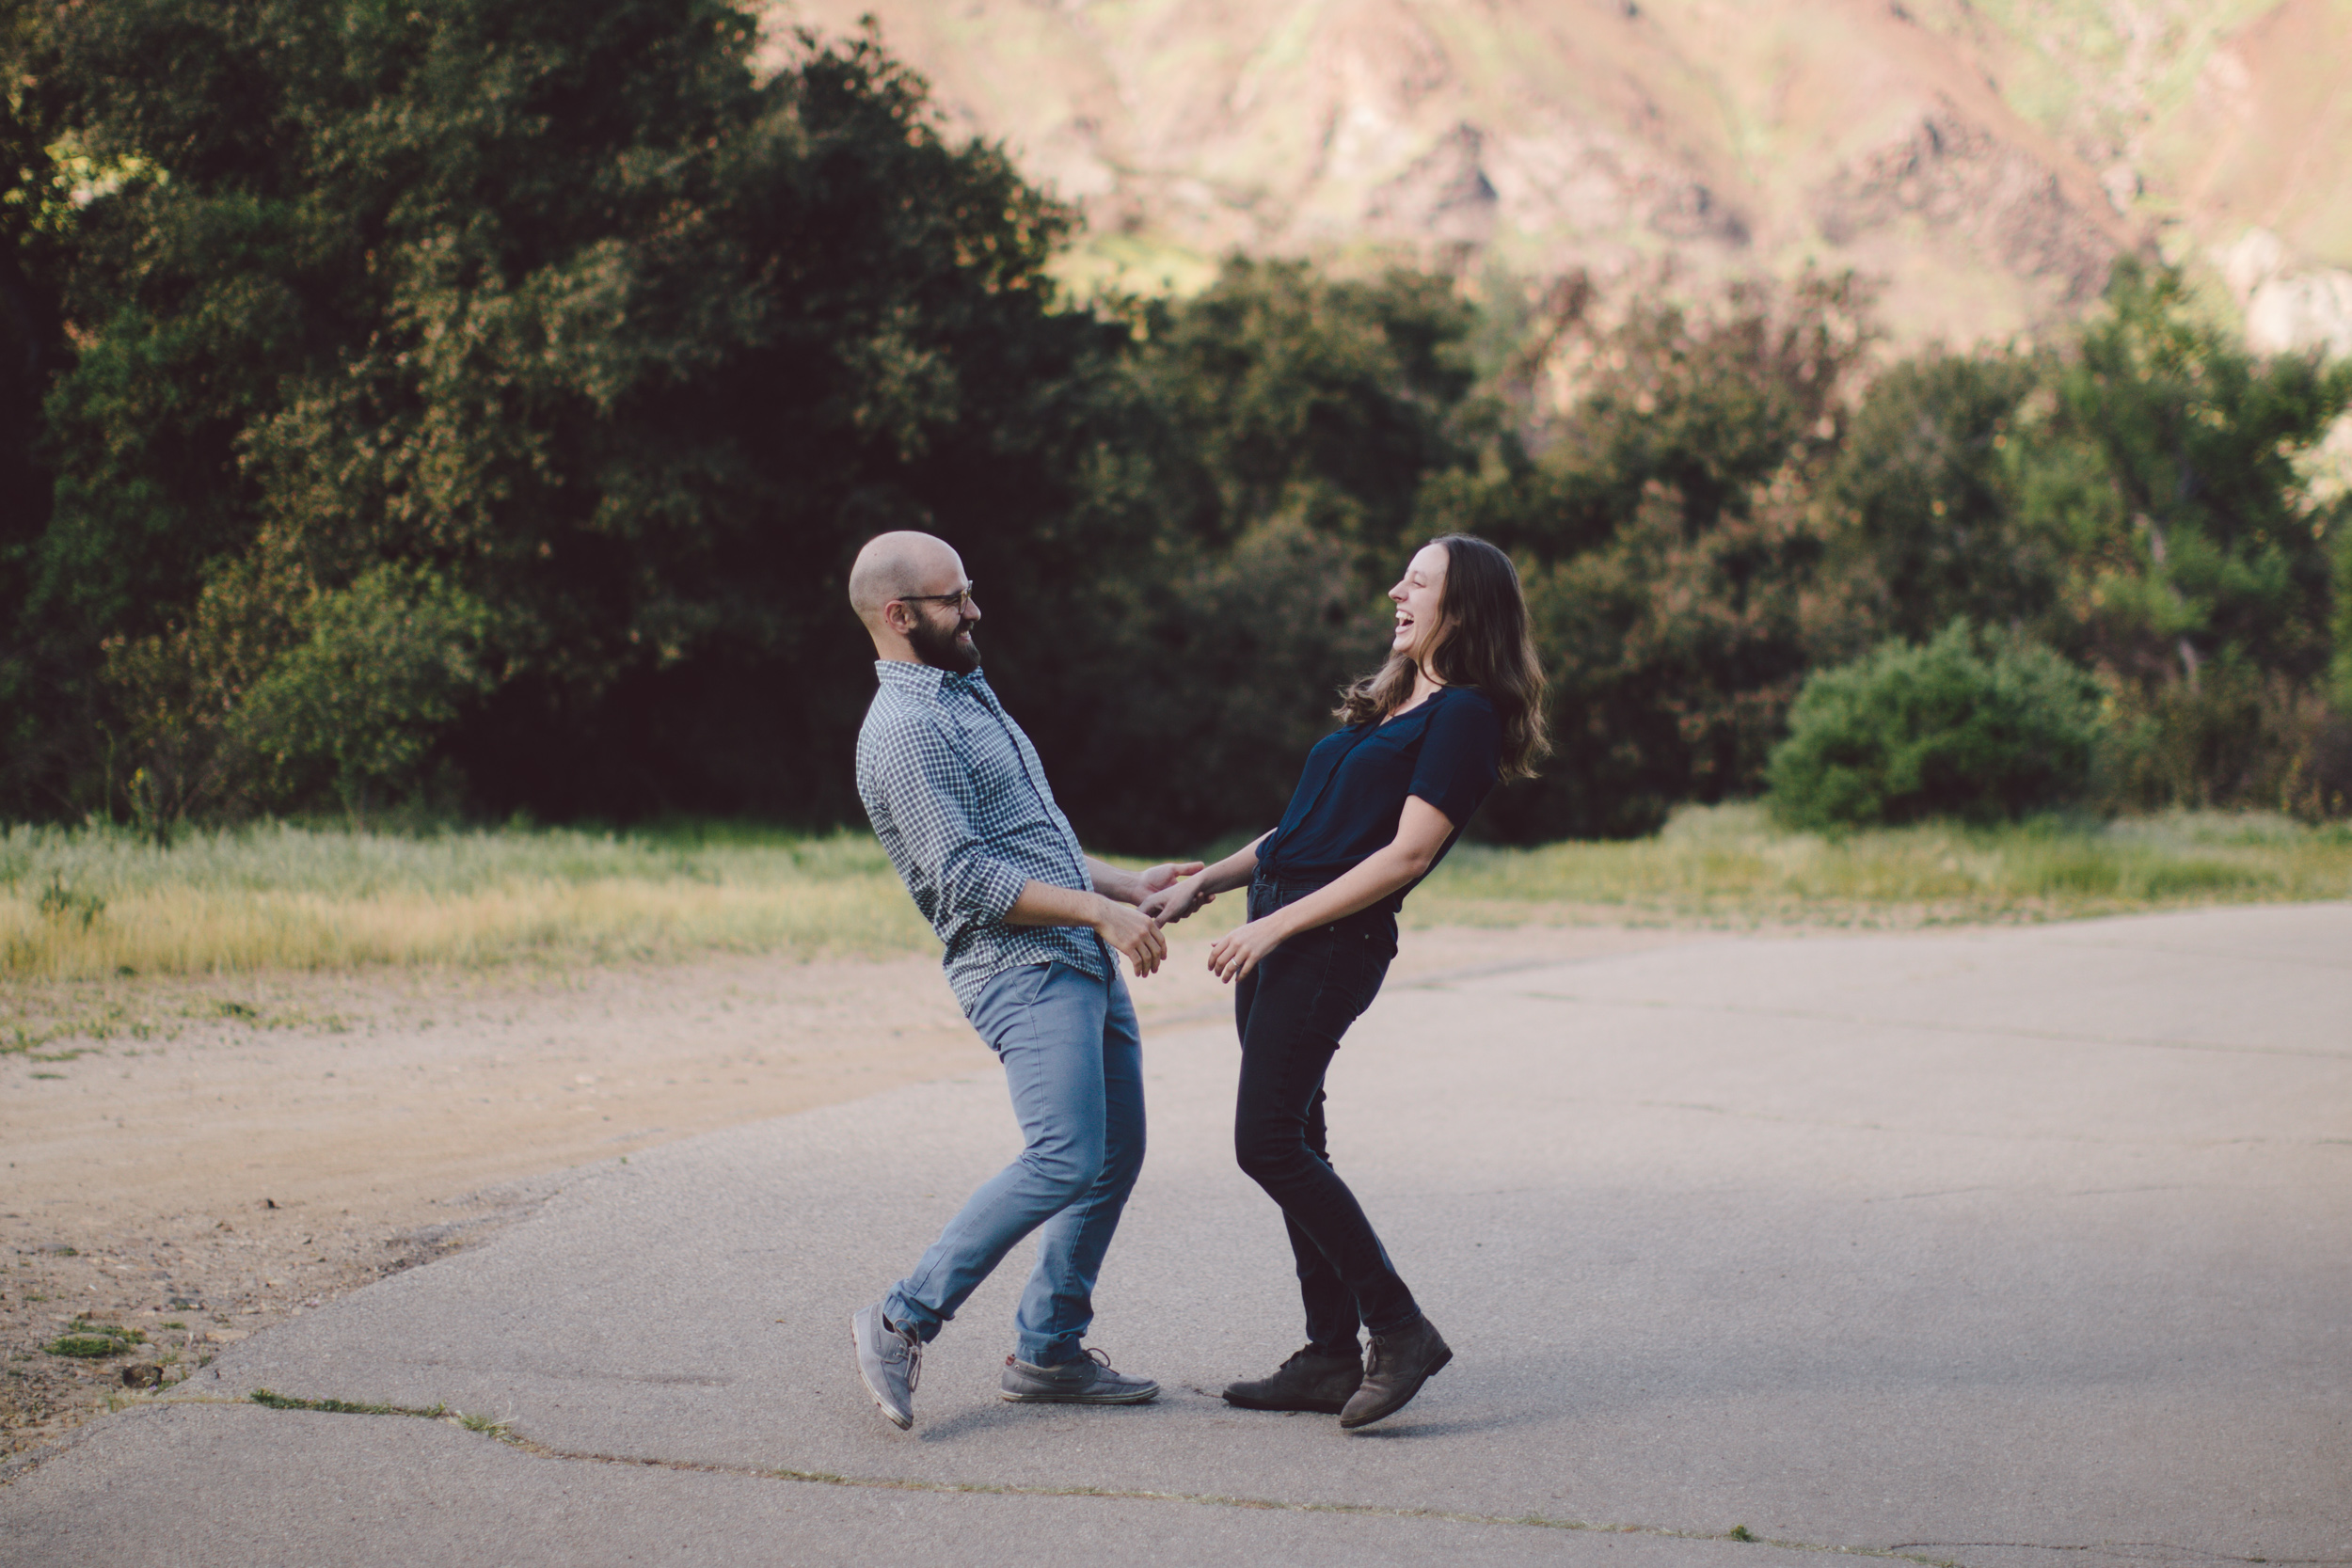 malibu canyon california adventure couples session